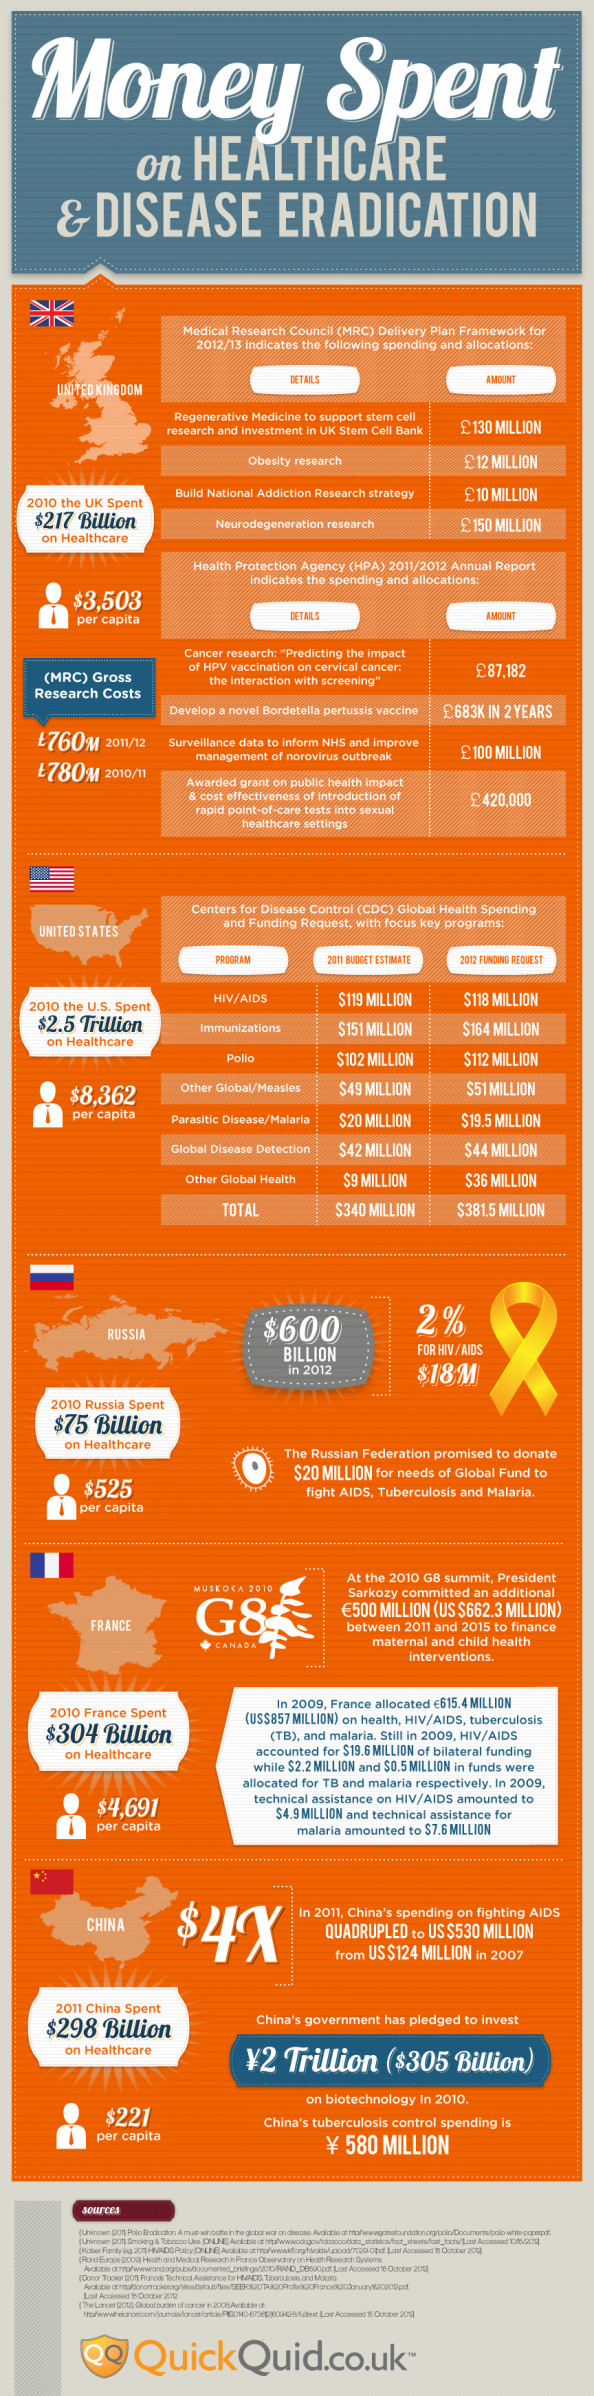 Money Spent on Healthcare & Disease Eradication Around the World Infographic